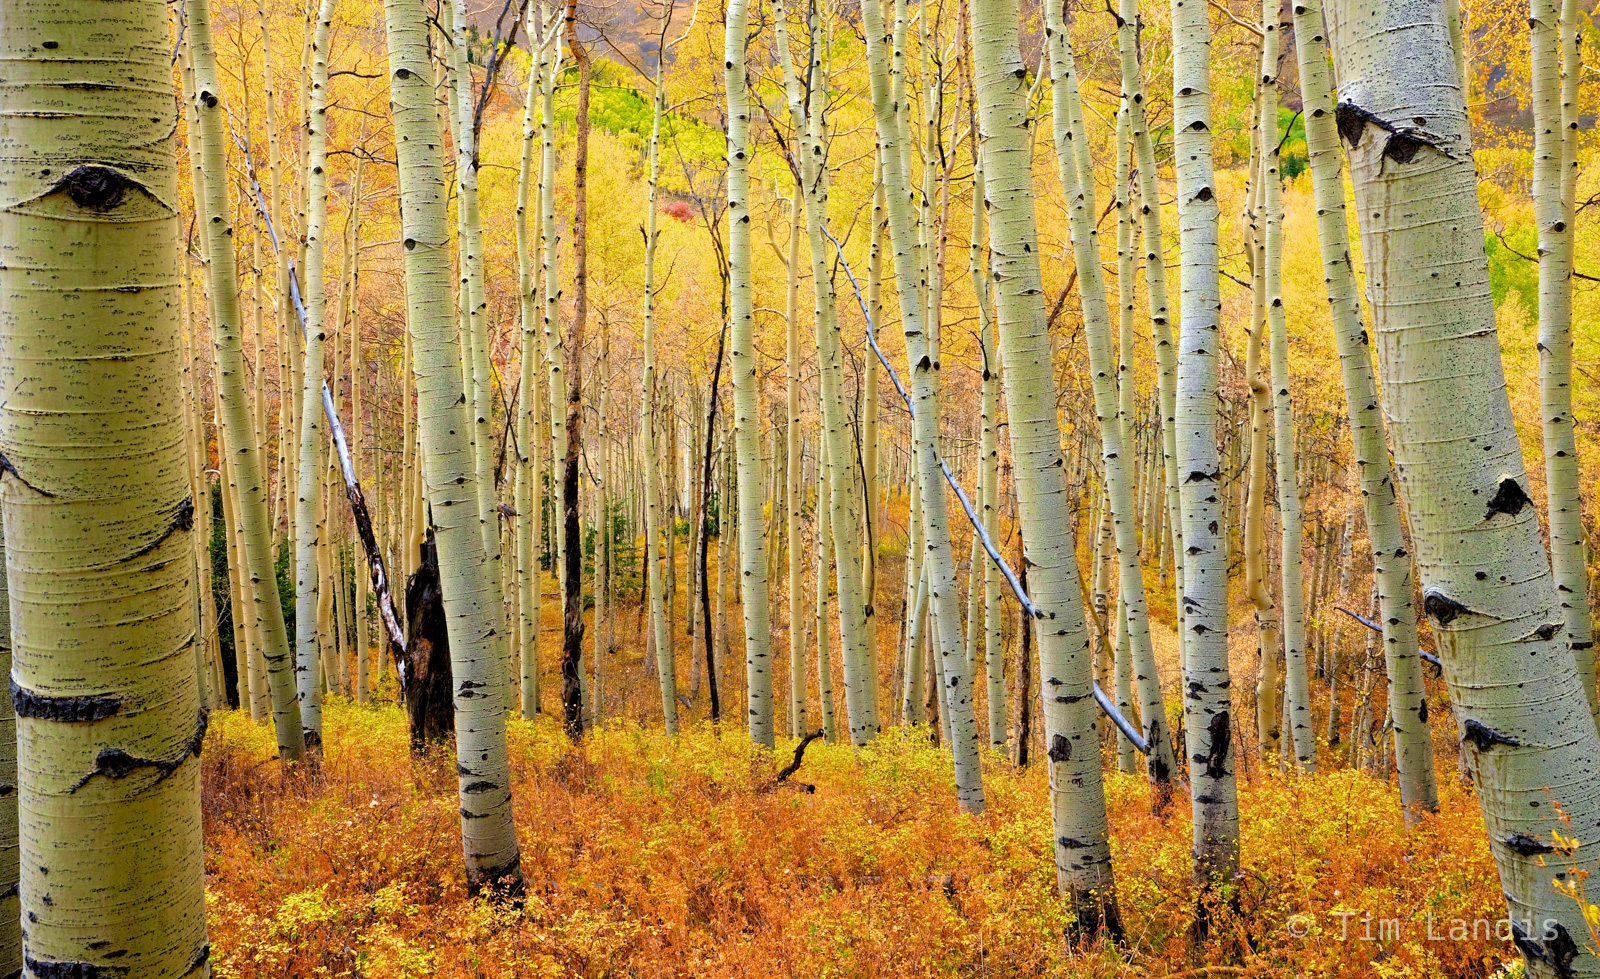 aspen grove, glowing, golden, yellows and gold, photo